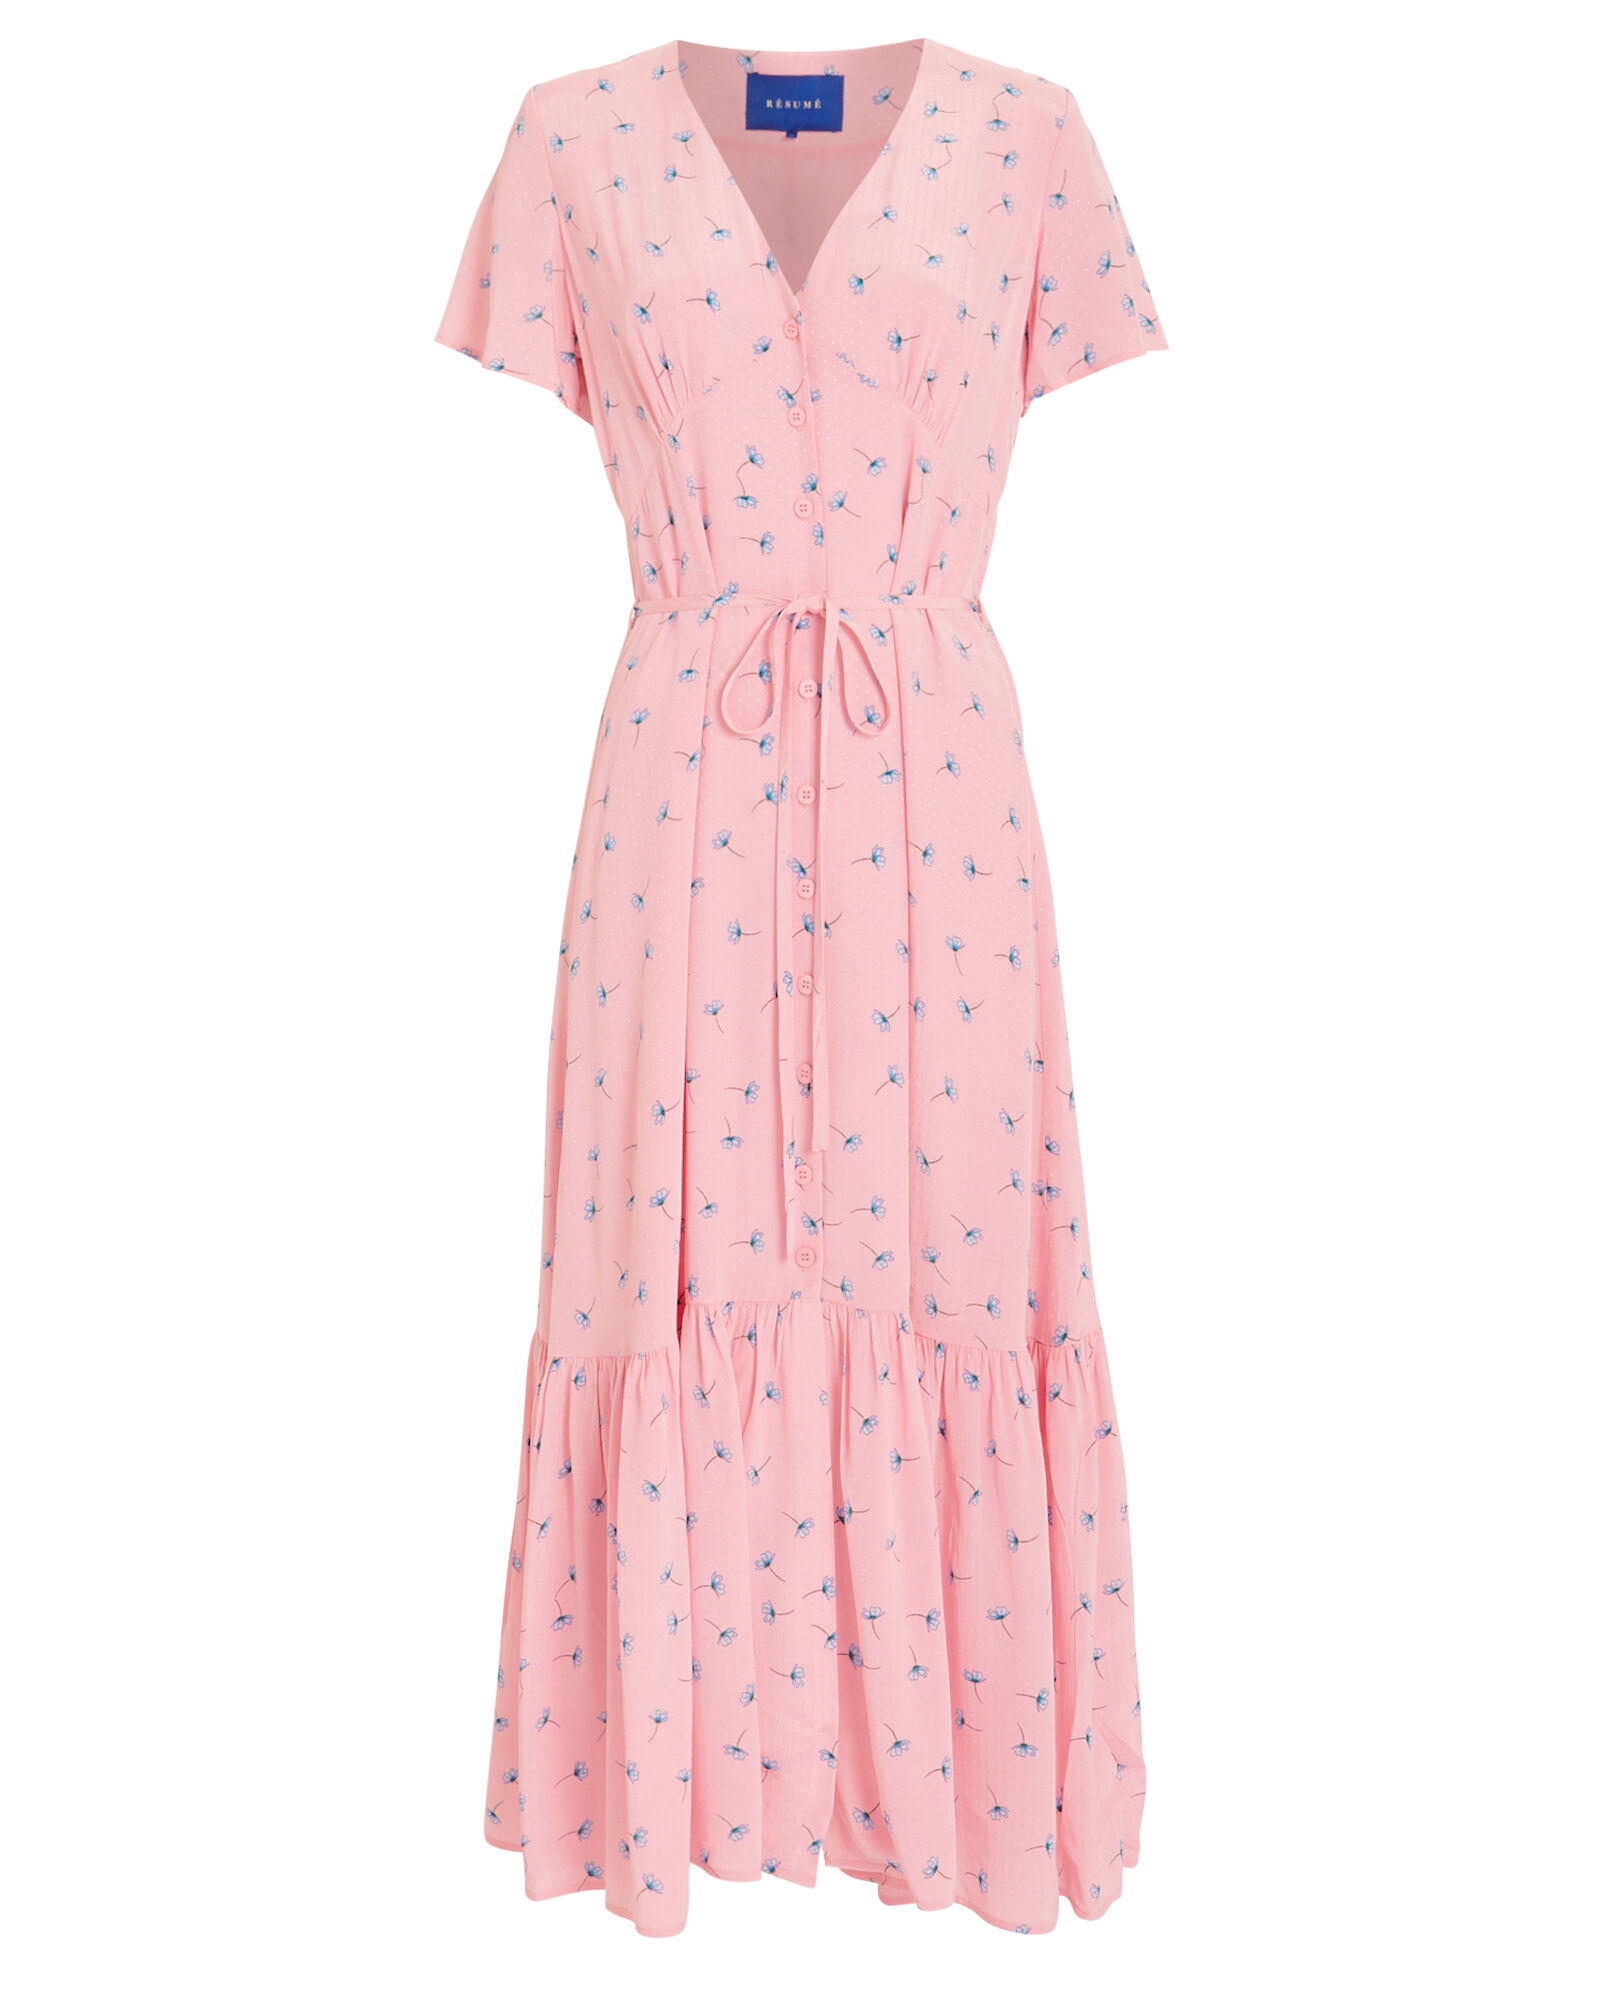 Nancy Floral Dress, PINK/FLORAL, hi-res